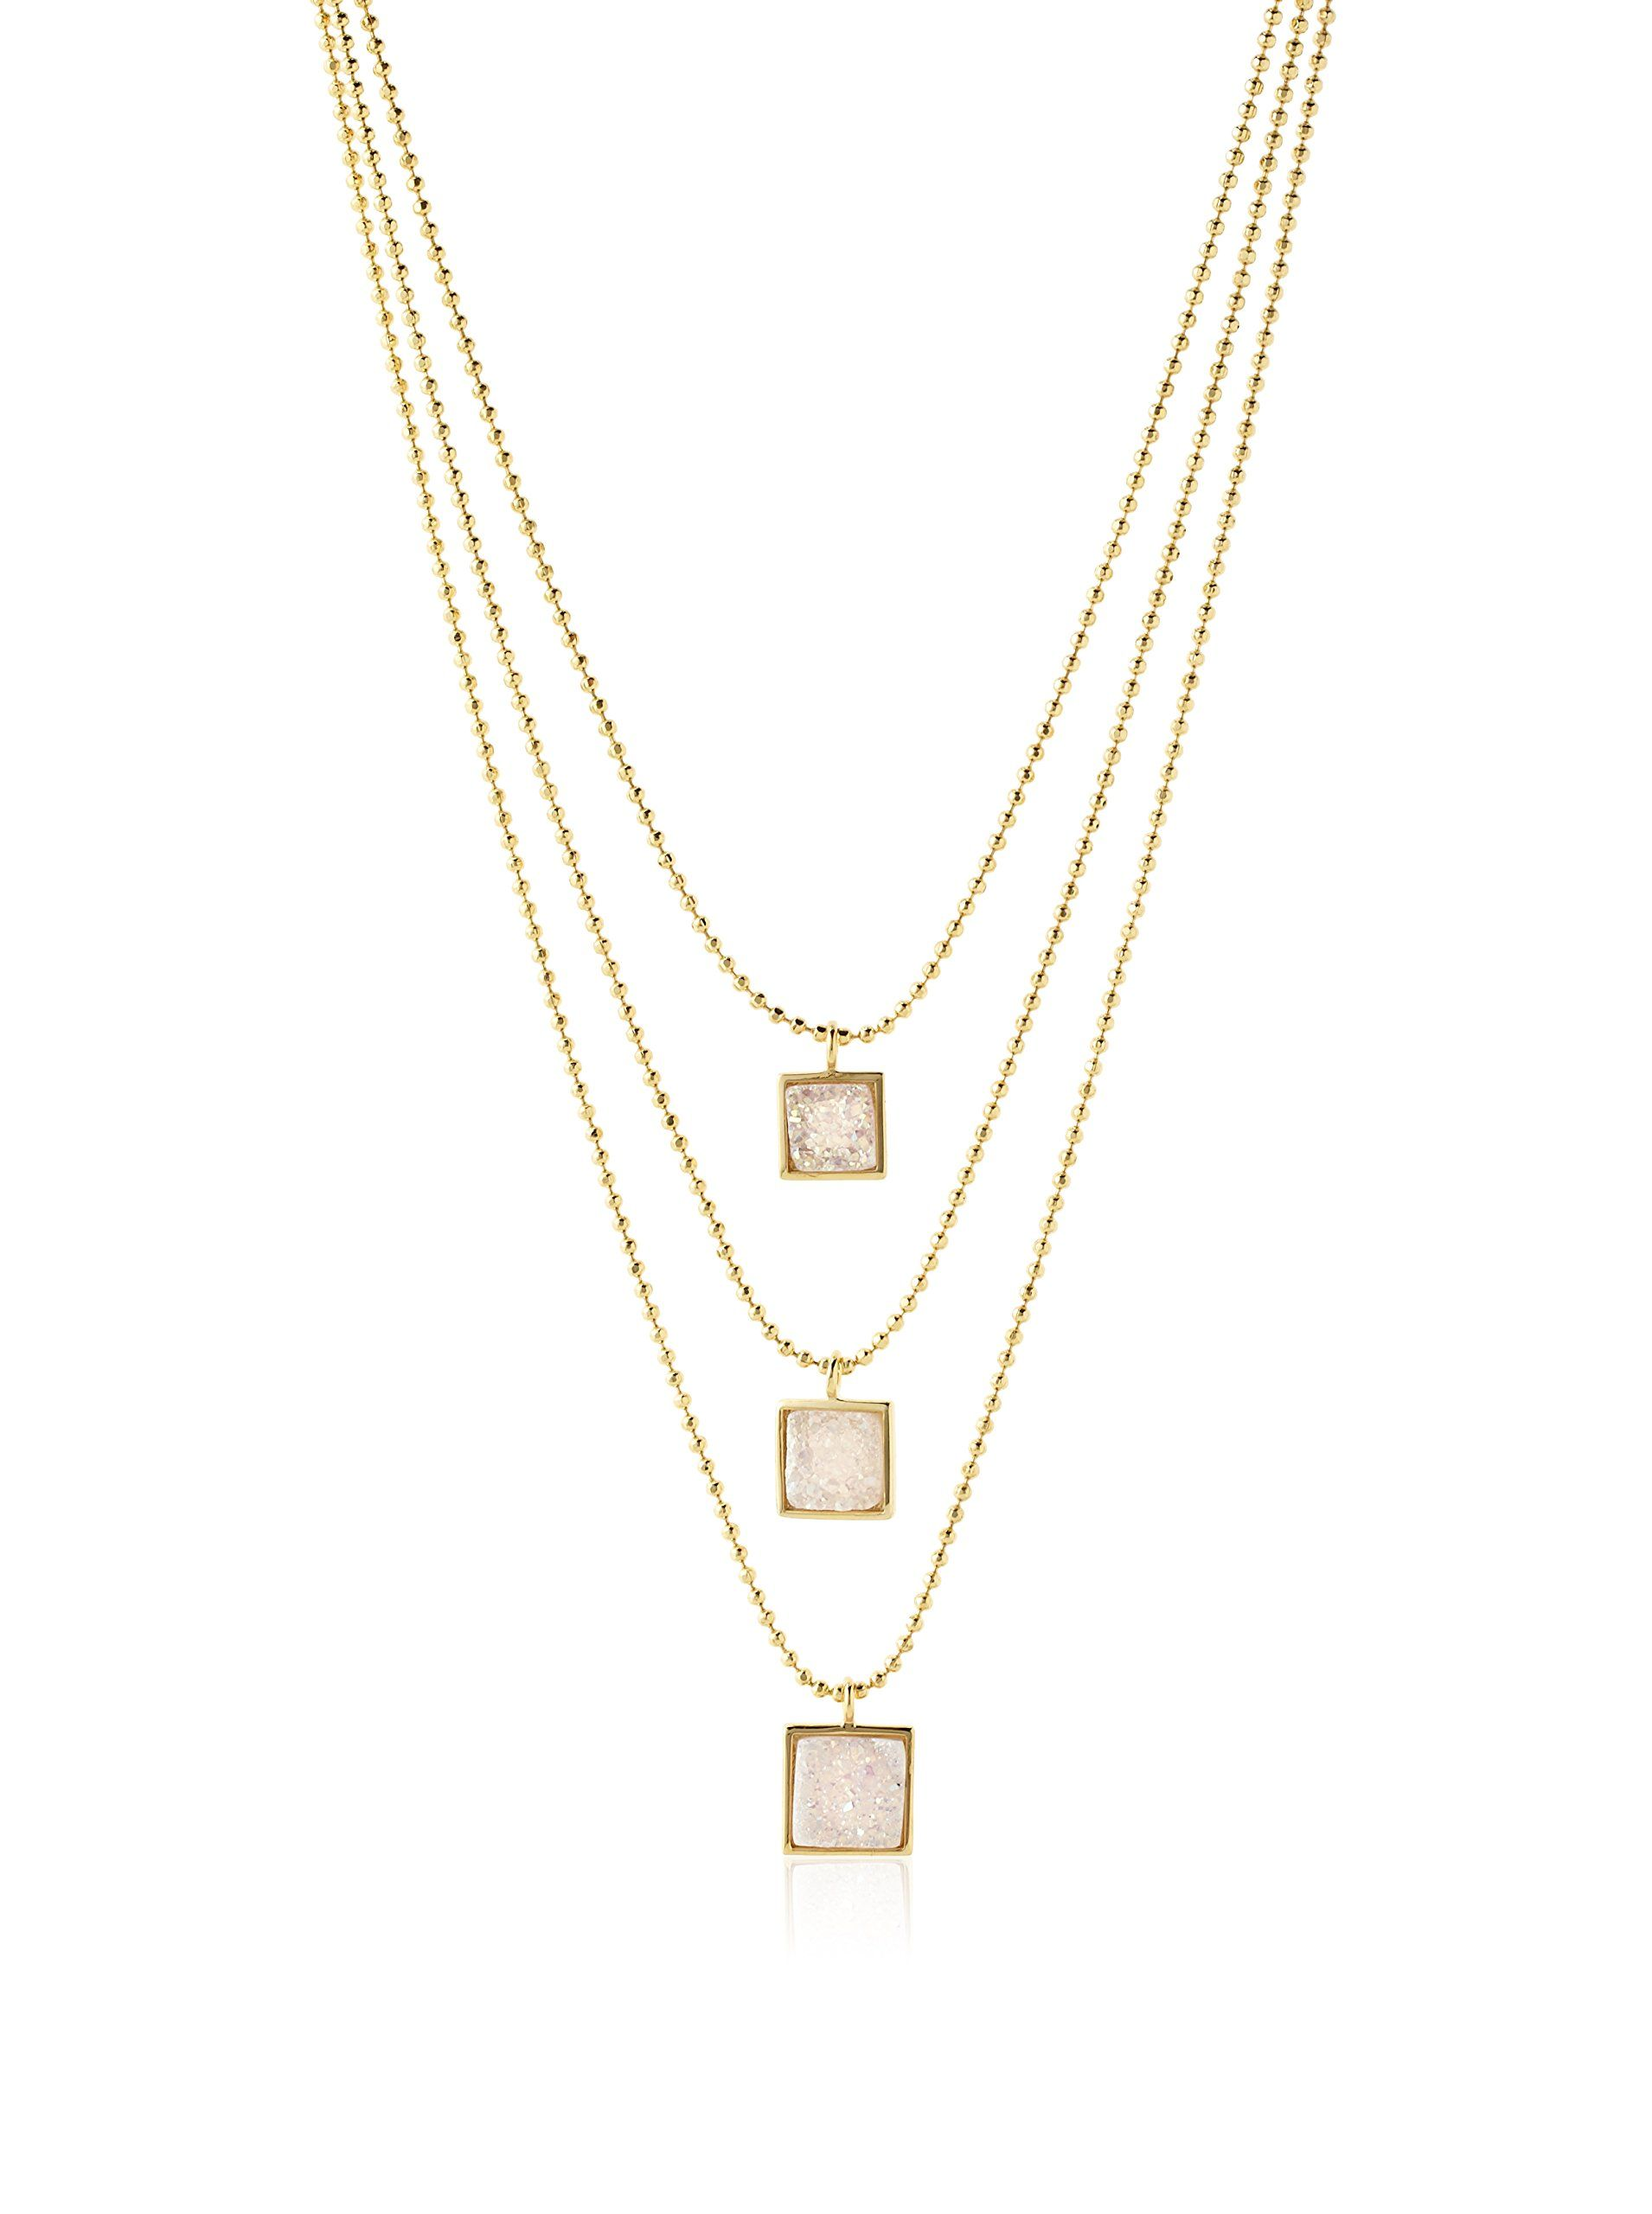 necklace tier clovis three sale index pixelated